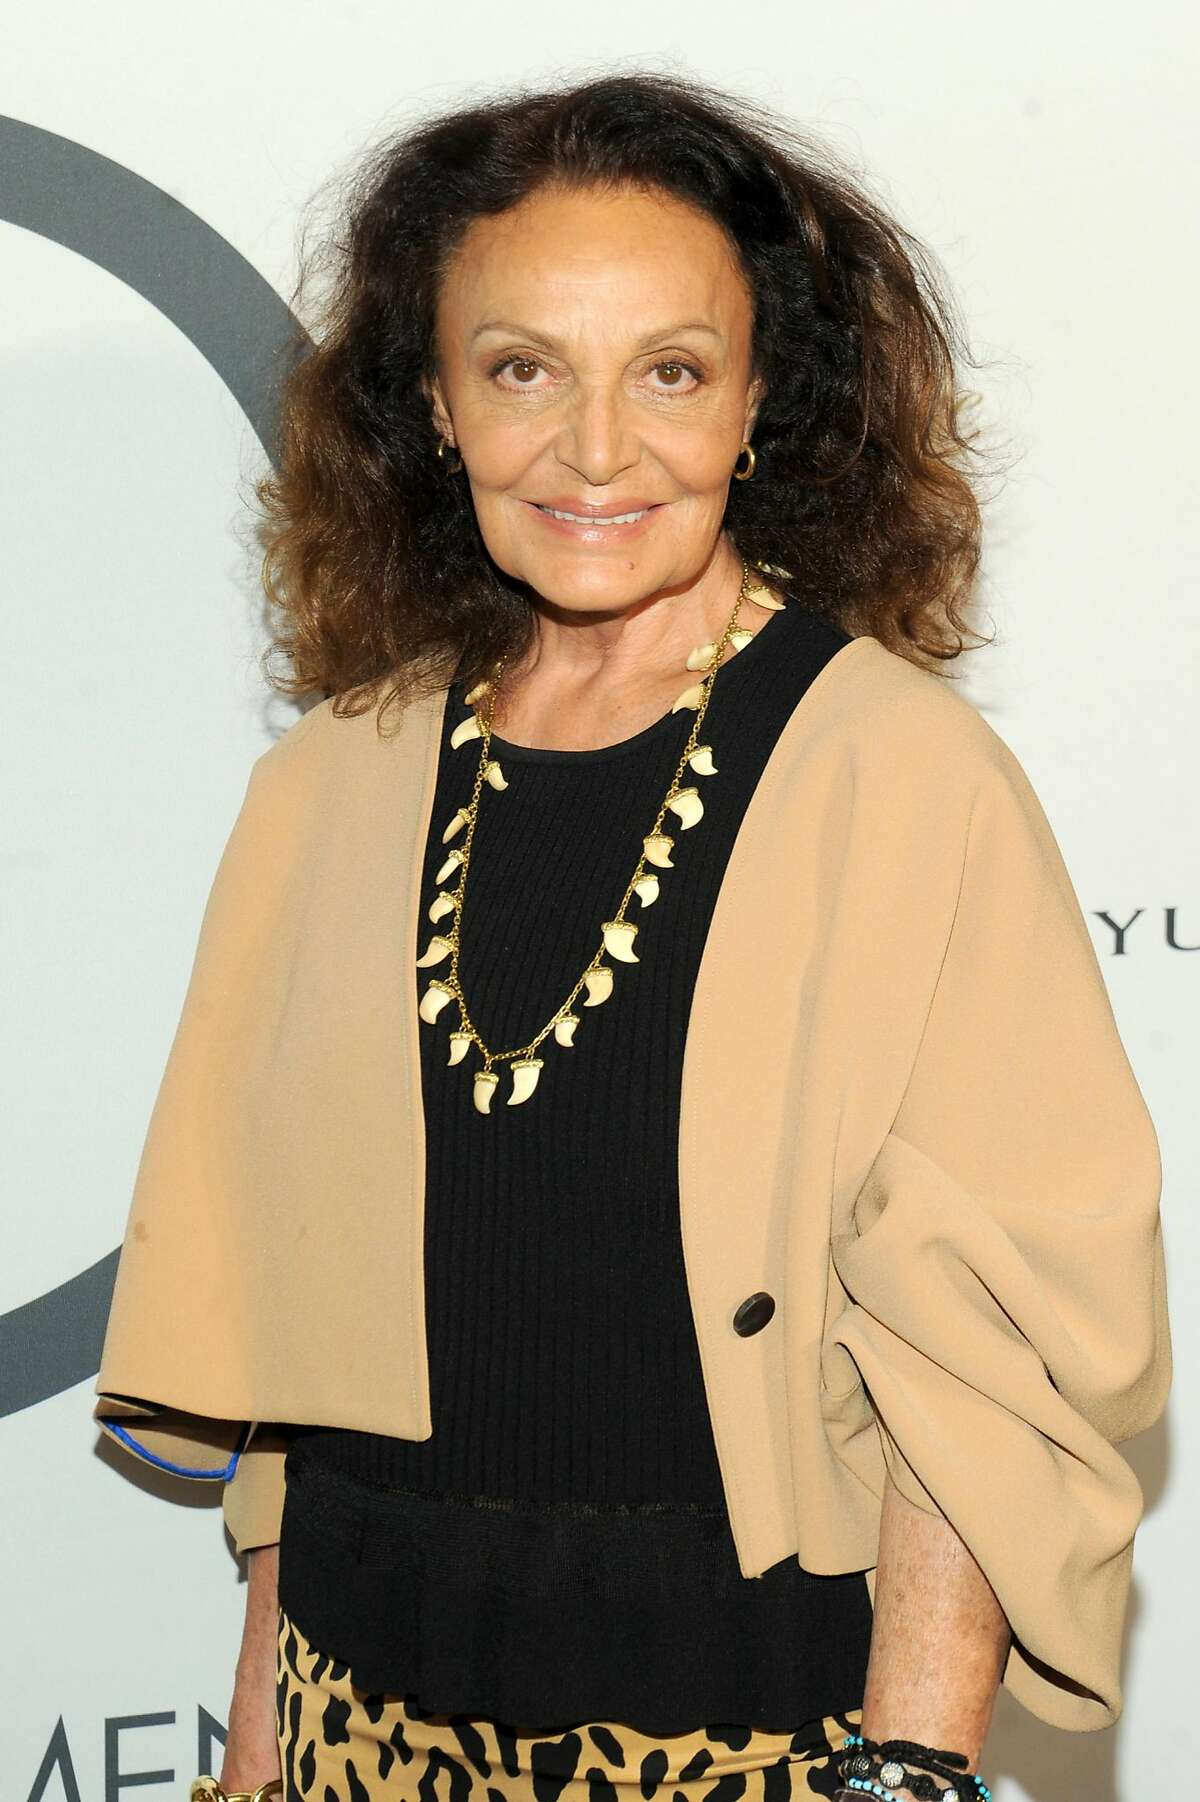 NEW YORK, NY - SEPTEMBER 19: Fashion designer Diane von Furstenberg attends Fashion 4 Development's 7th Annual First Ladies Luncheon at The Pierre Hotel on September 19, 2017 in New York City. (Photo by Brad Barket/Getty Images for Fashion 4 Development)